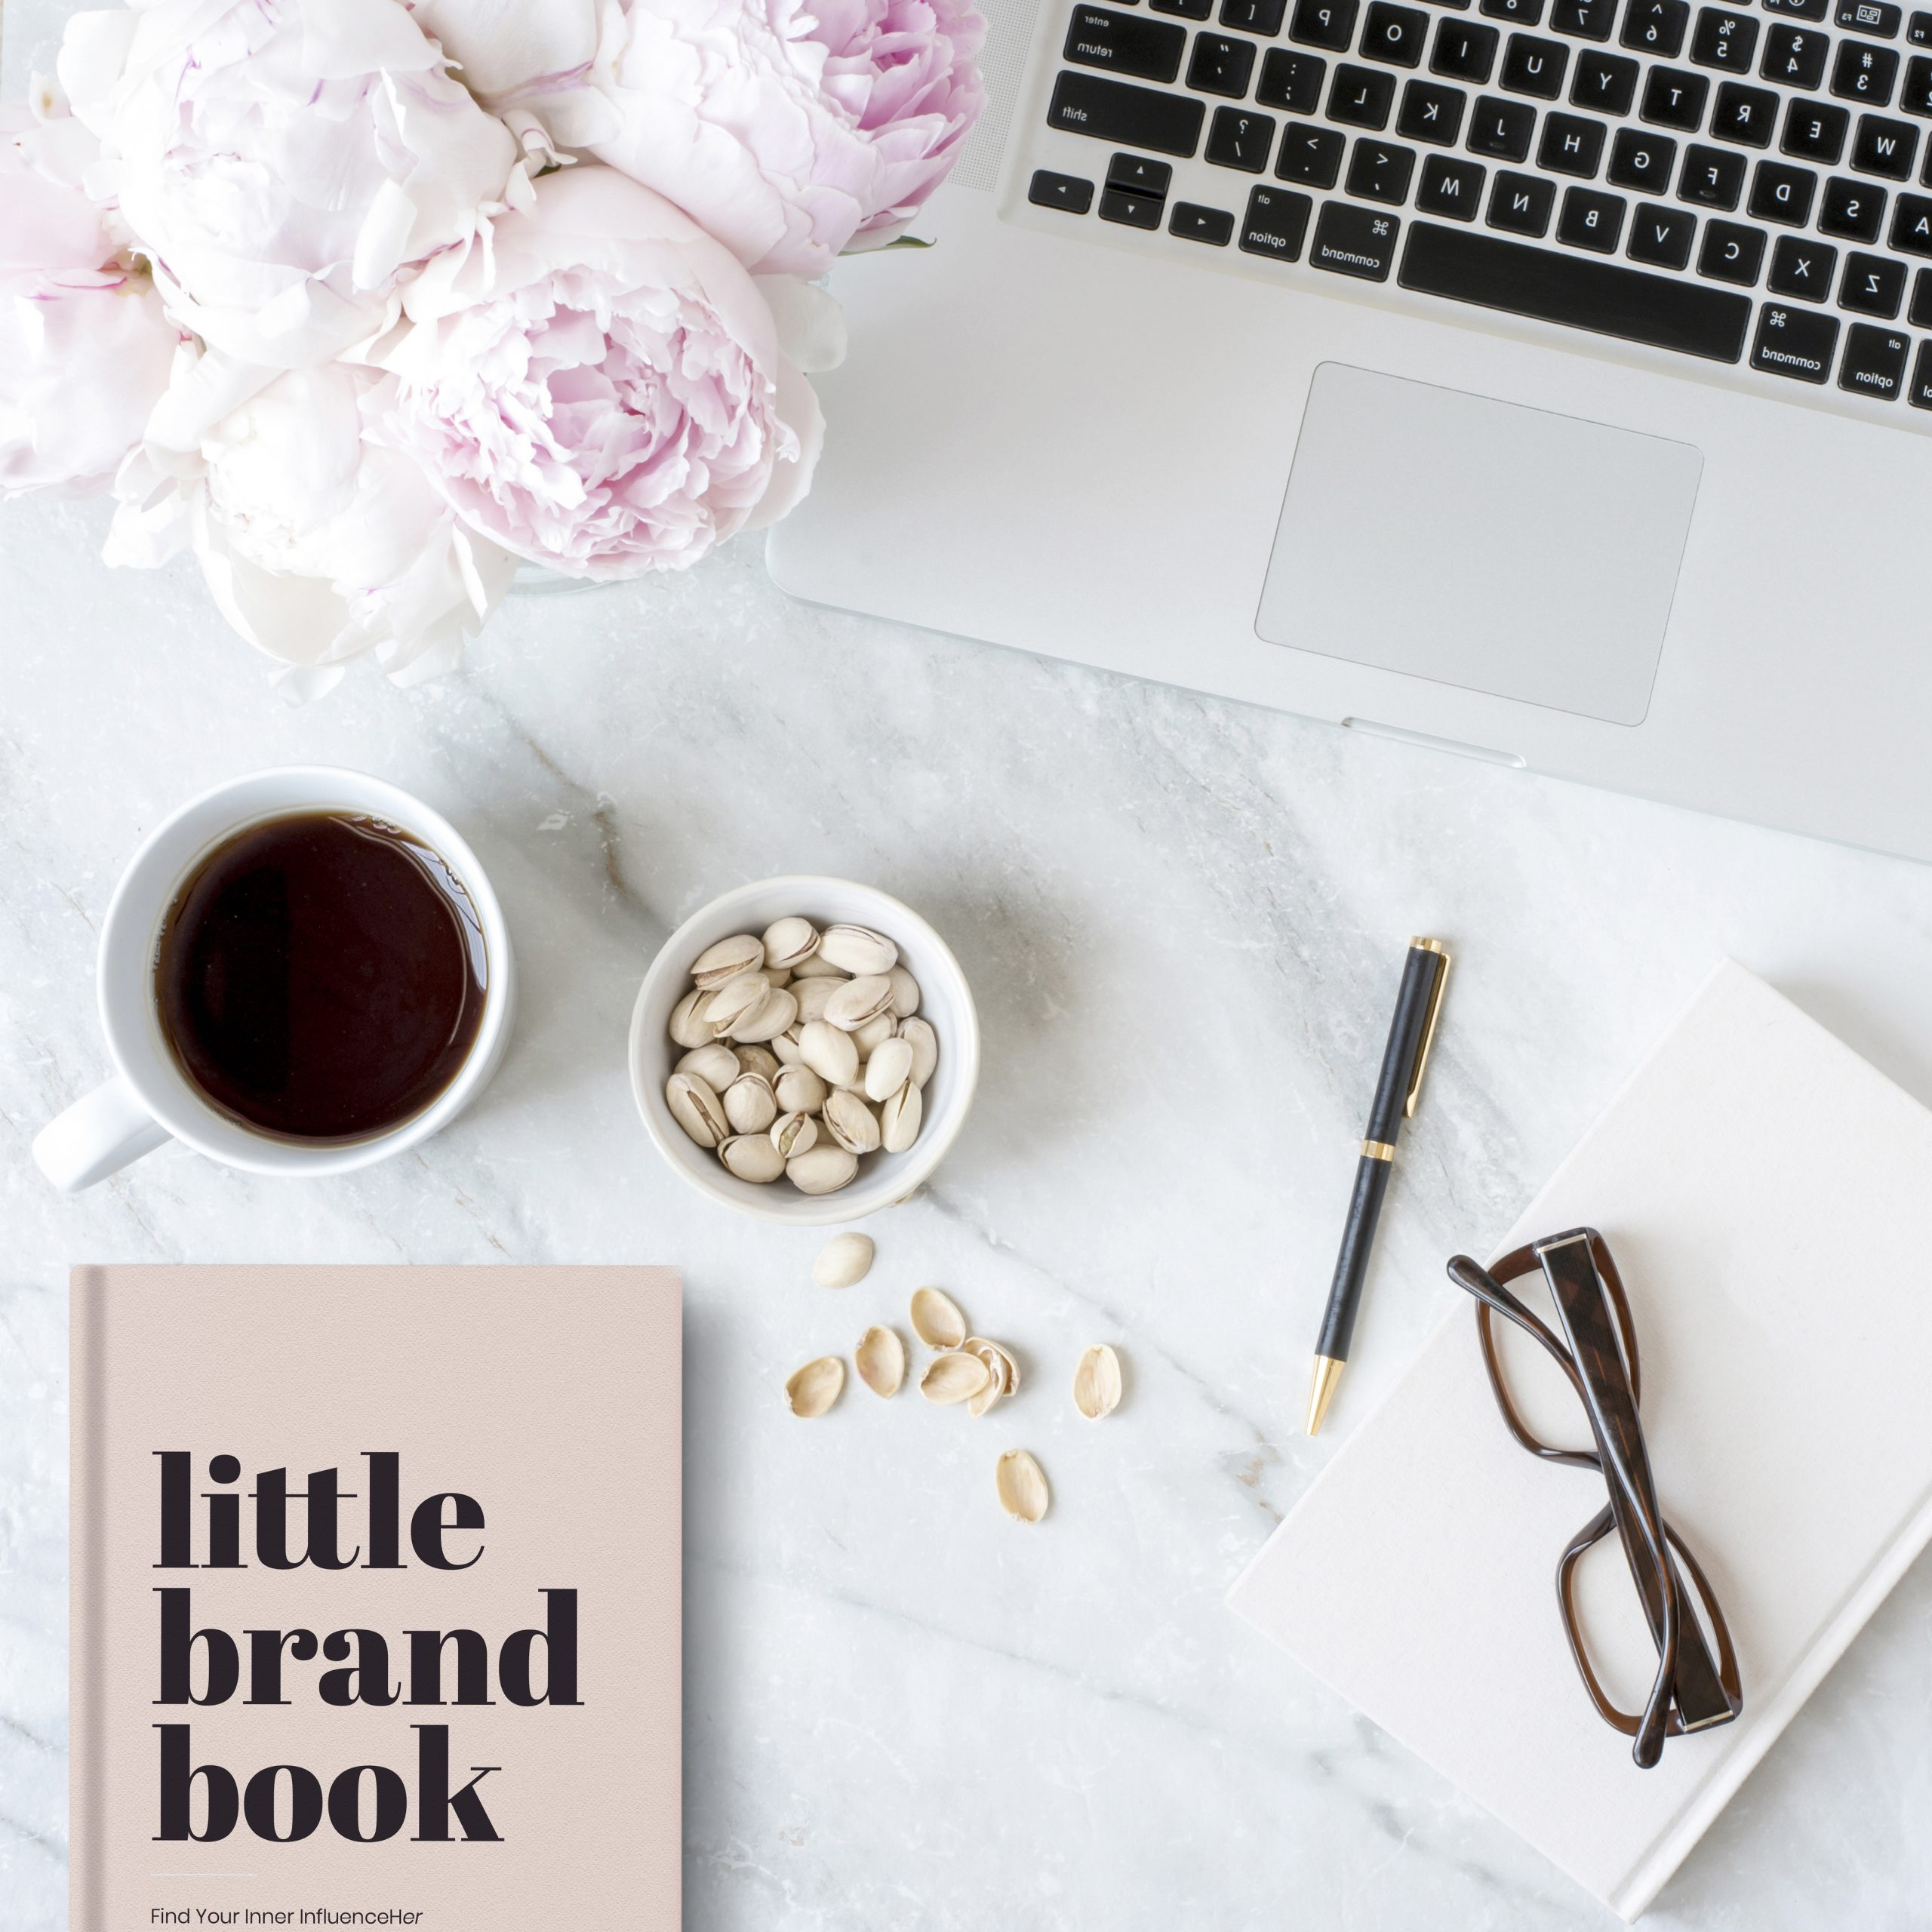 Kalika Yap's Little brand book on table with coffee, eyeglass, and laptop